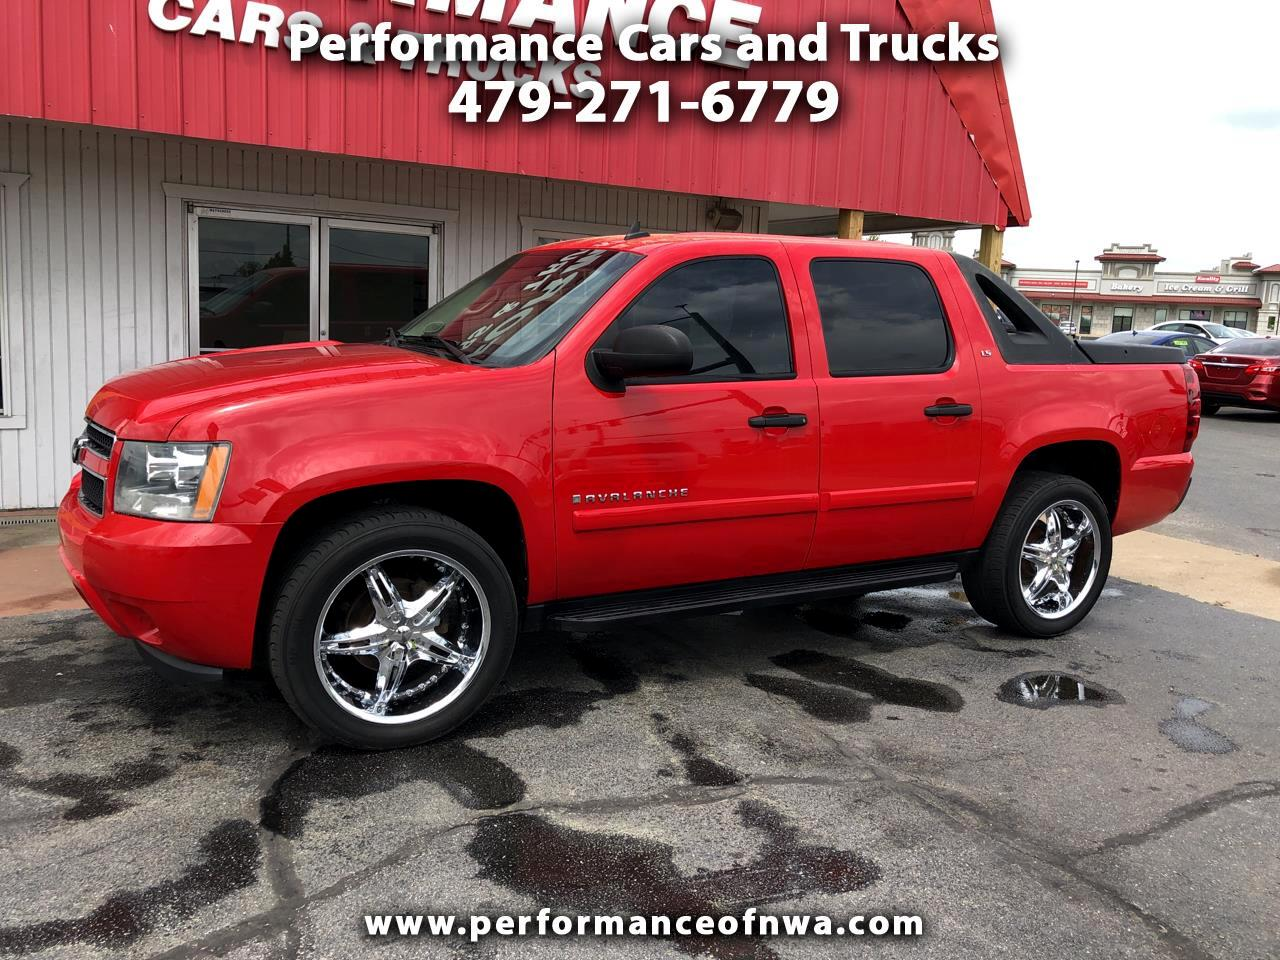 2008 Chevrolet Avalanche 1500 4WD